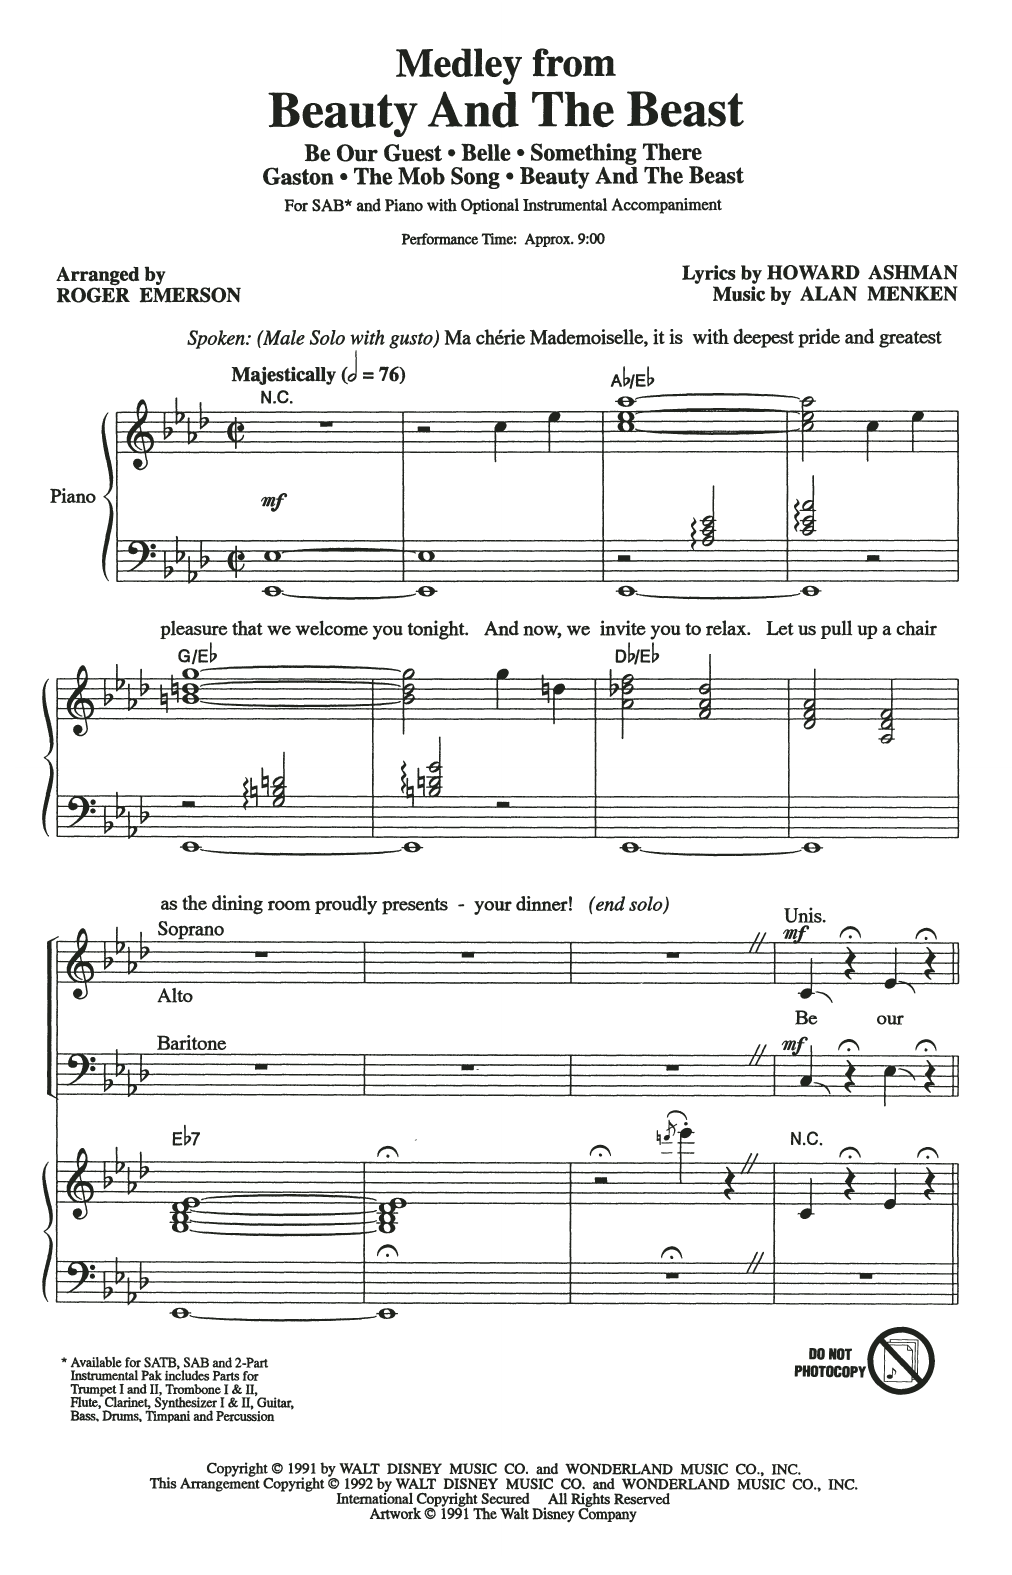 Download Alan Menken & Howard Ashman 'Beauty And The Beast (Medley) (arr. Roger Emerson)' Digital Sheet Music Notes & Chords and start playing in minutes